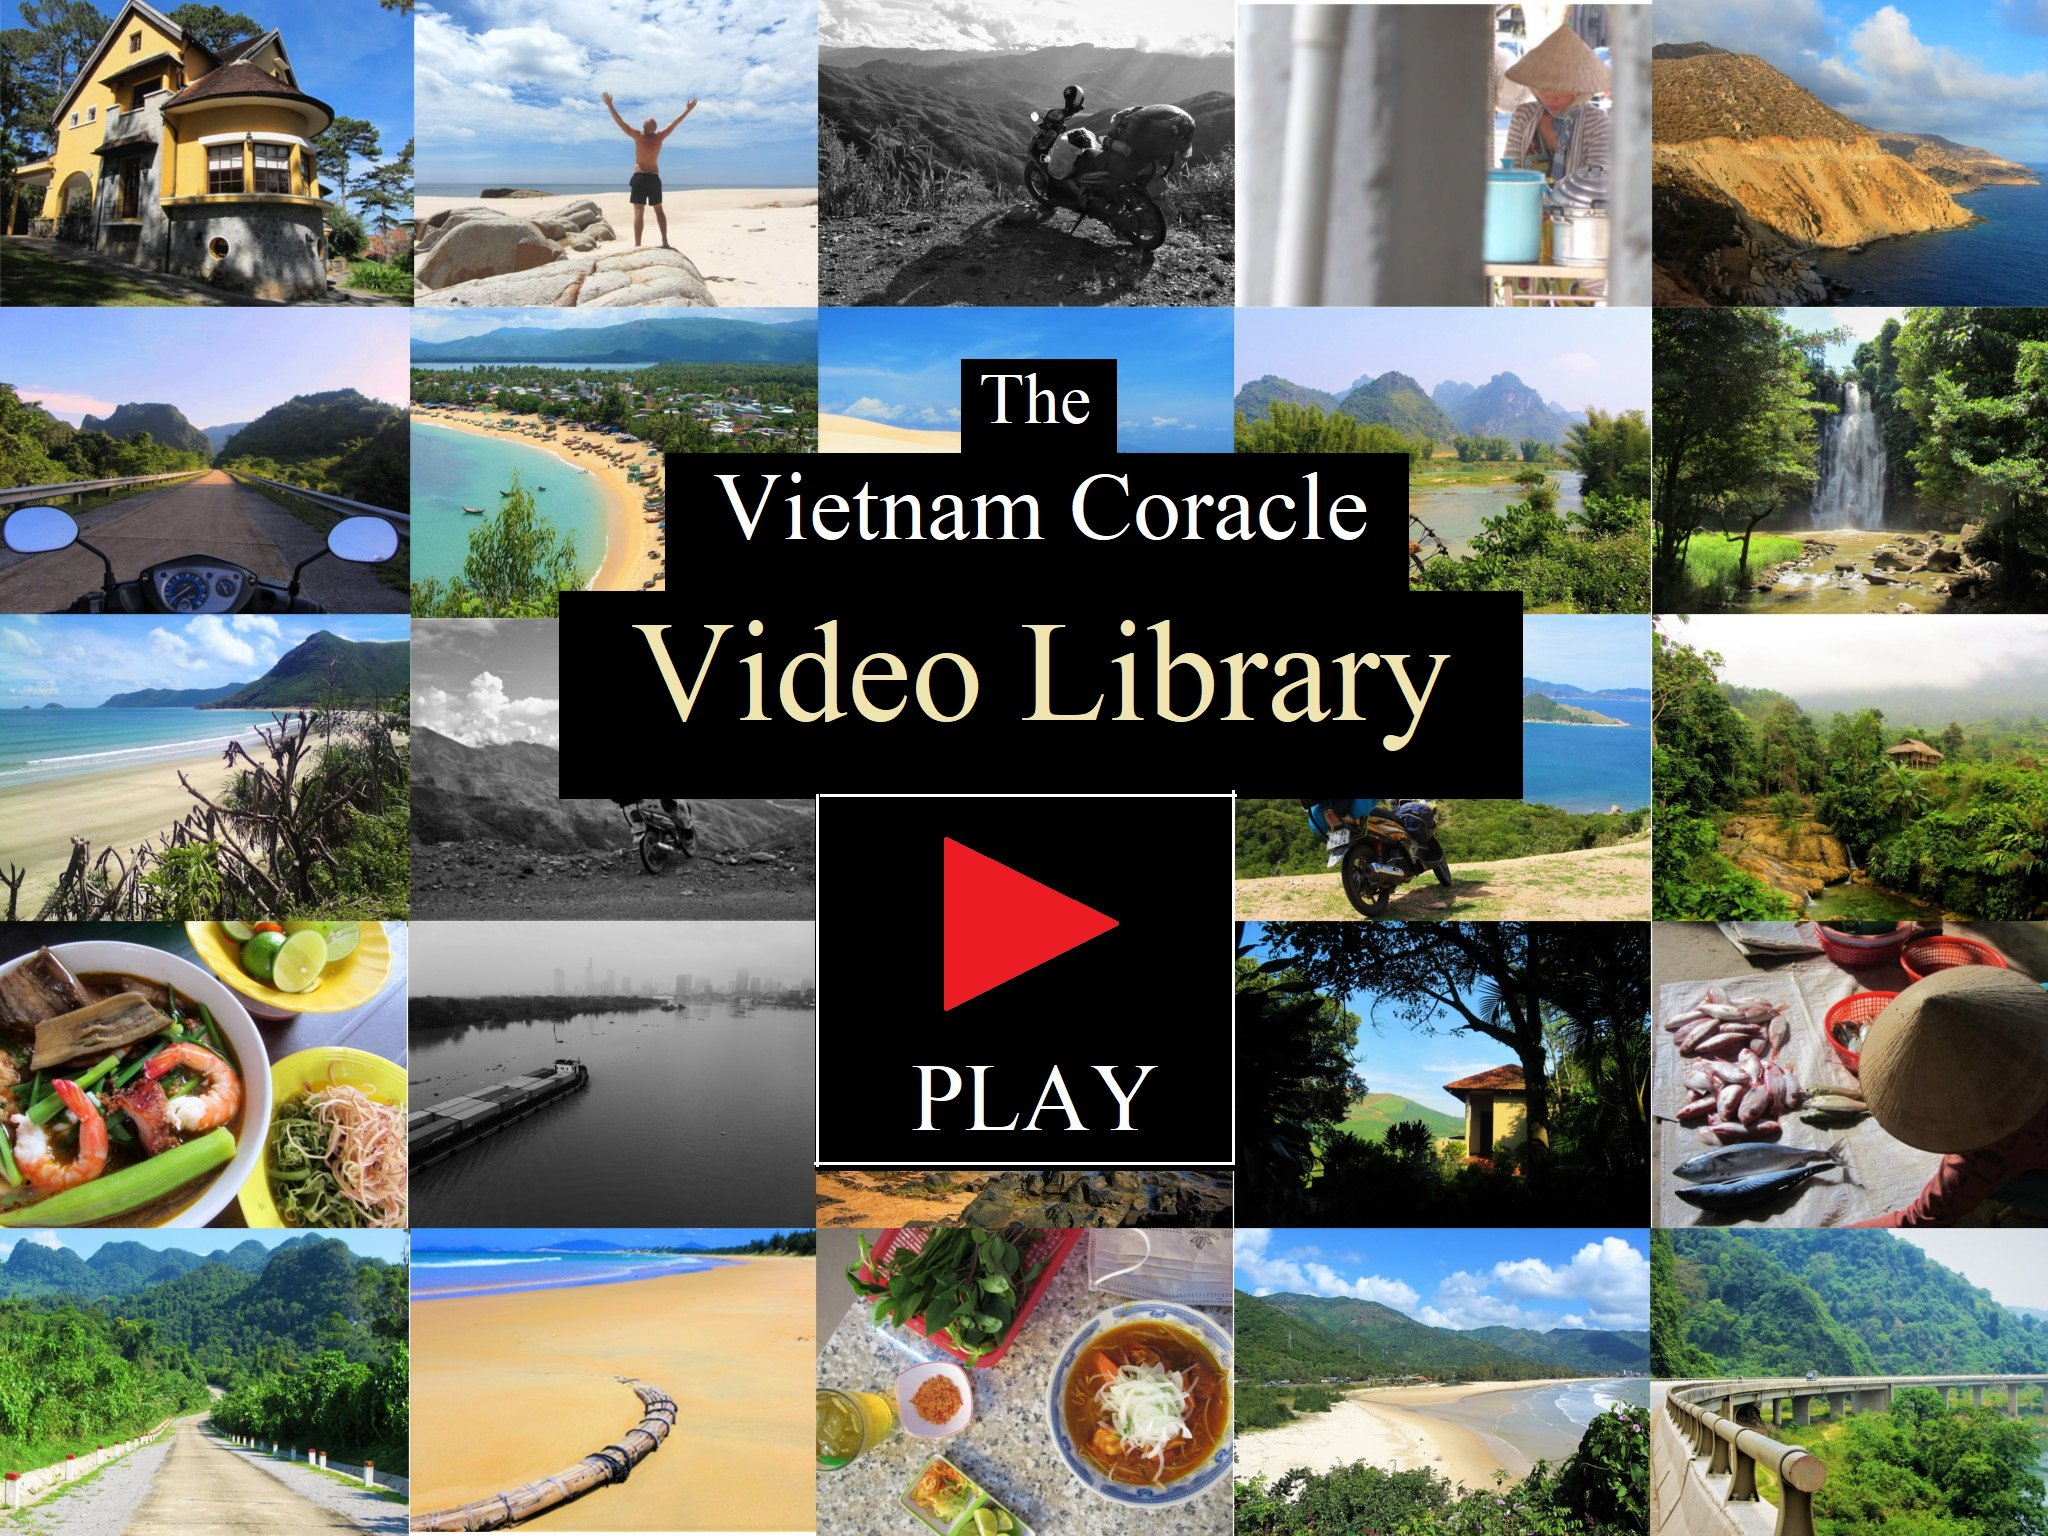 Vietnam Coracle Video Library